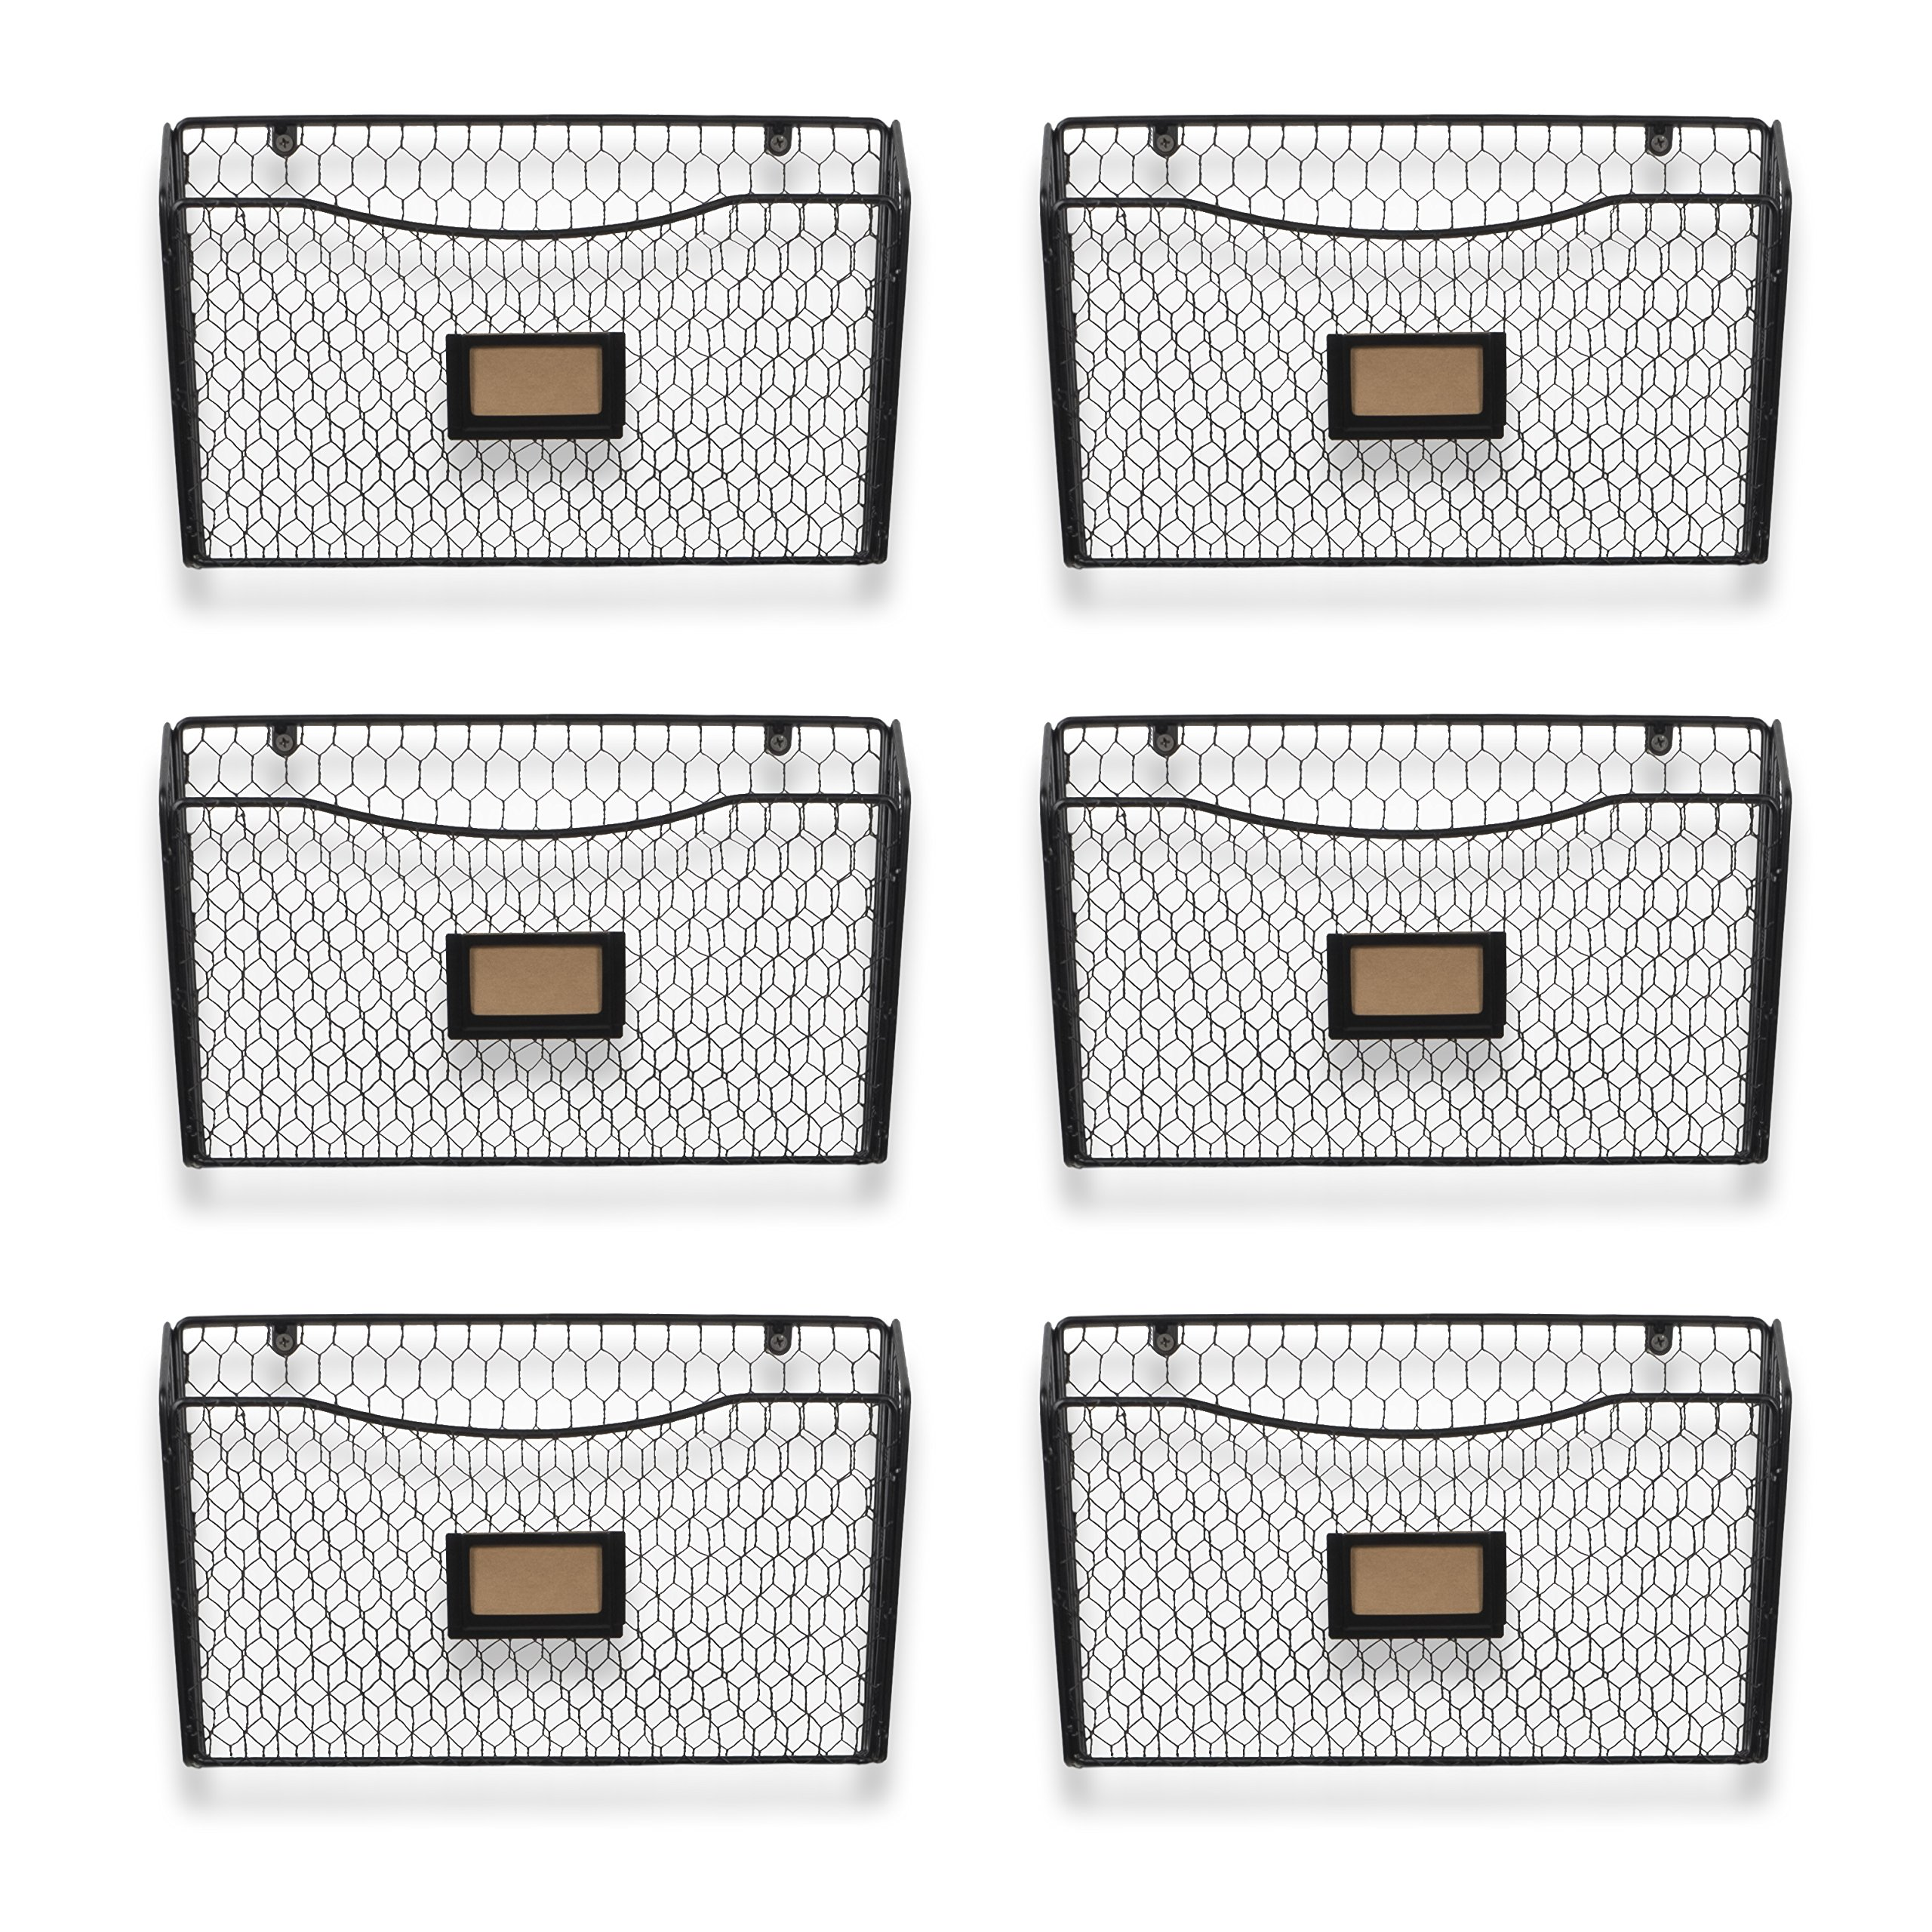 Wall35 Felic Hanging File Holder - Wall Mounted Metal Chicken Wire Magazine Rack - Office Folder Organizer with Name Tag Slot in Black (6) by Wall35 (Image #3)